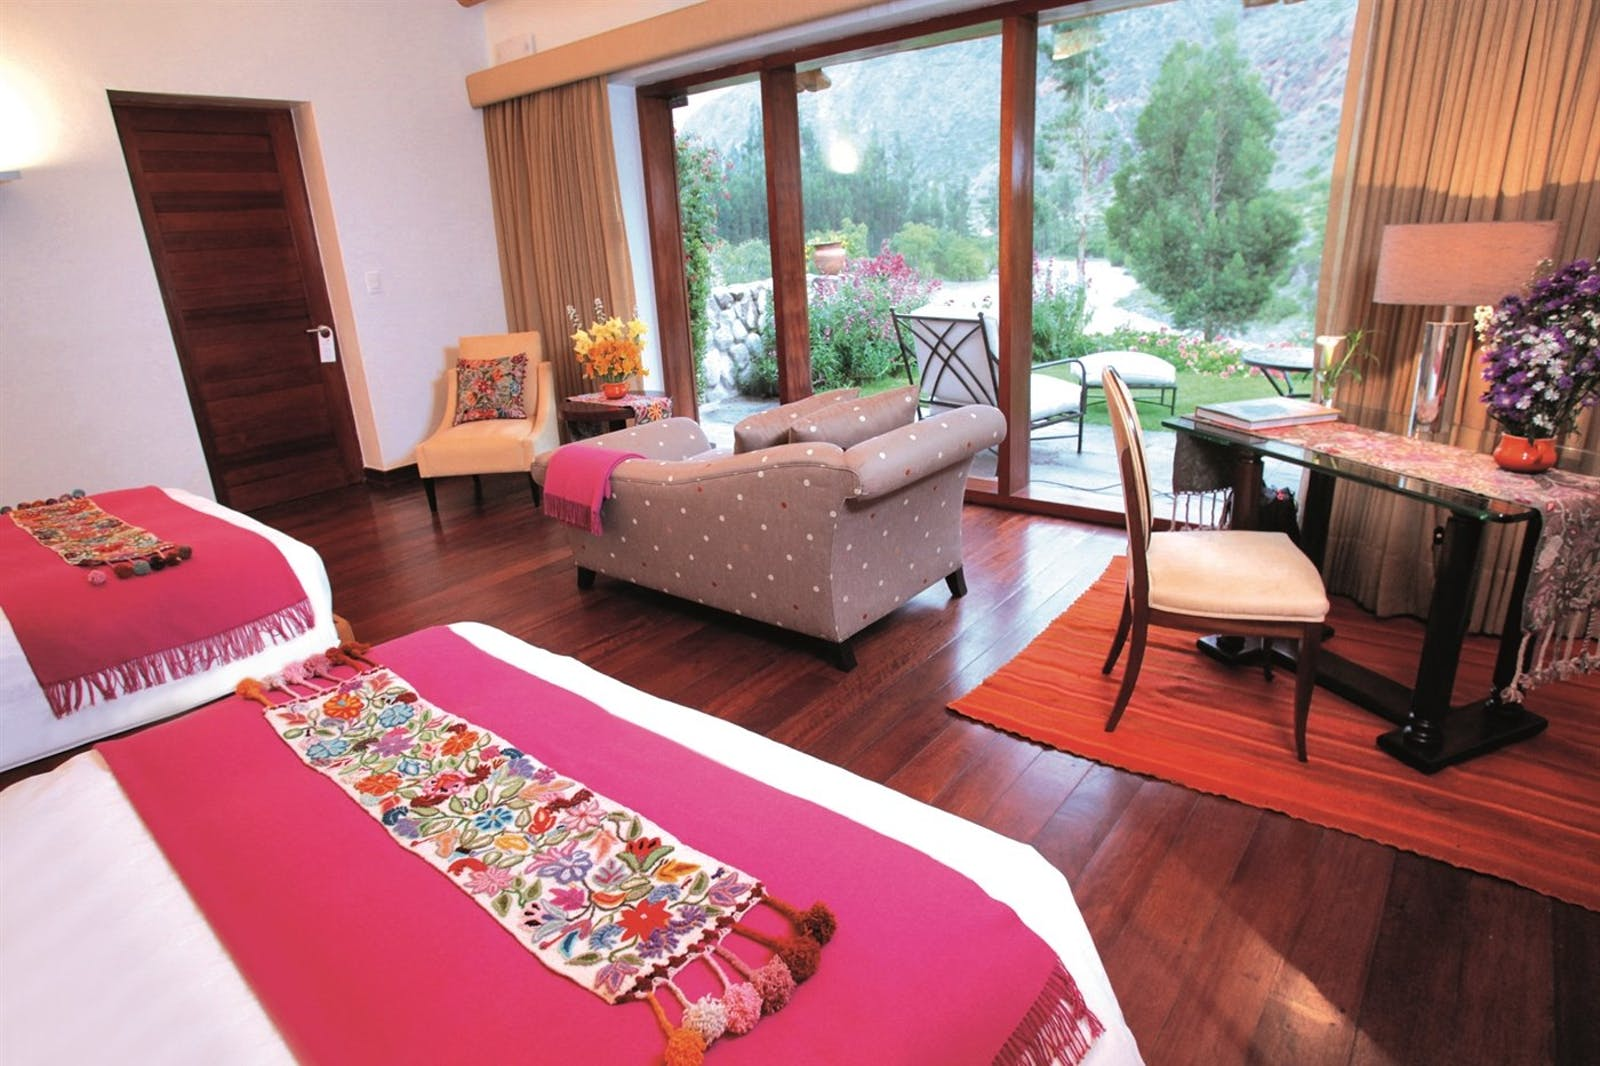 Junior Suite, Rio Sagrado, A Belmond Hotel, Sacred Valley